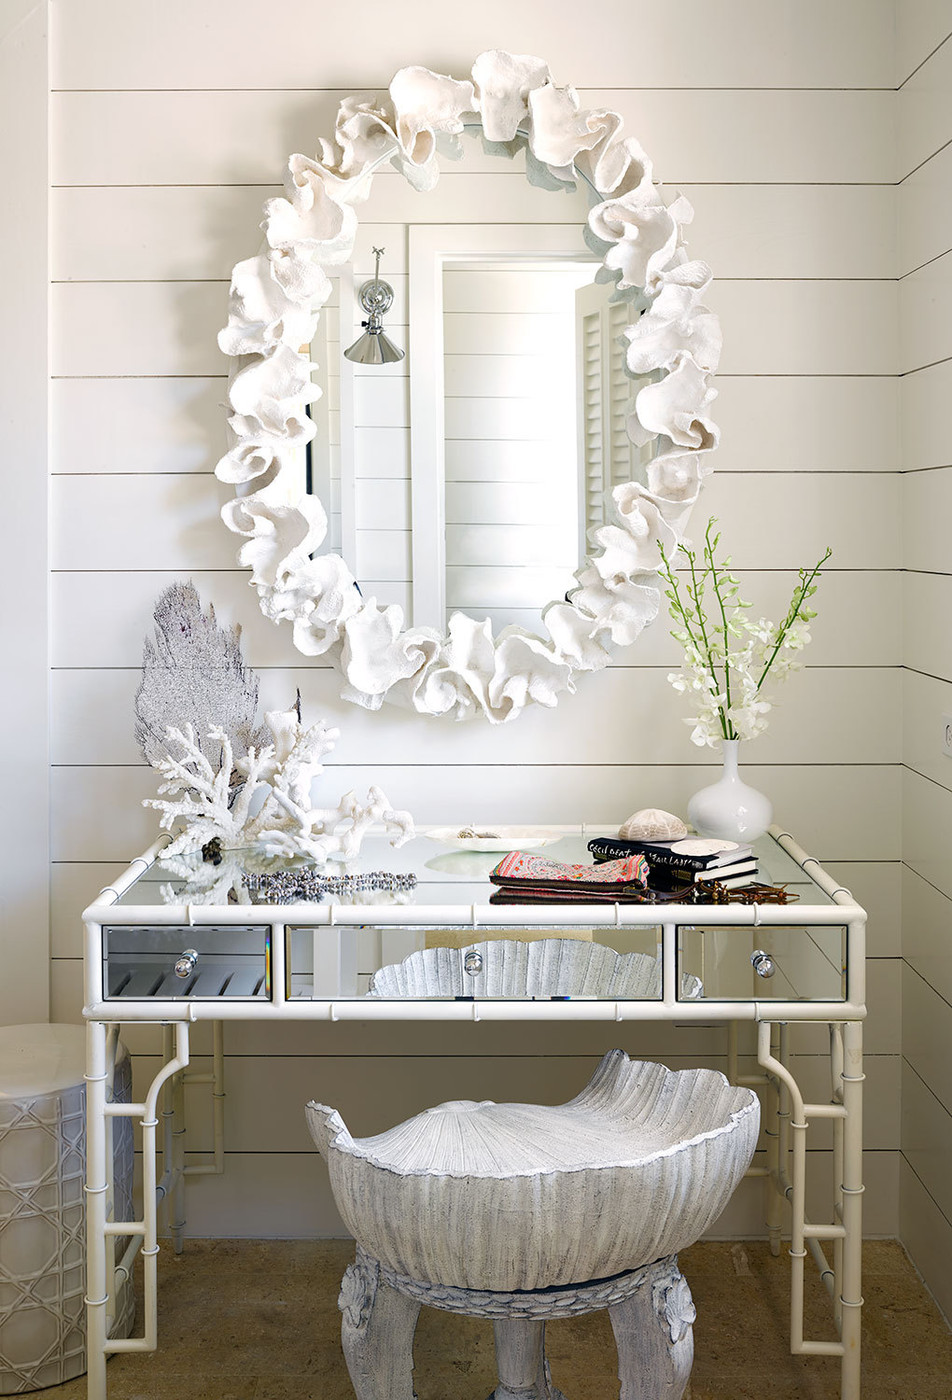 Vanity table area with a coral motif